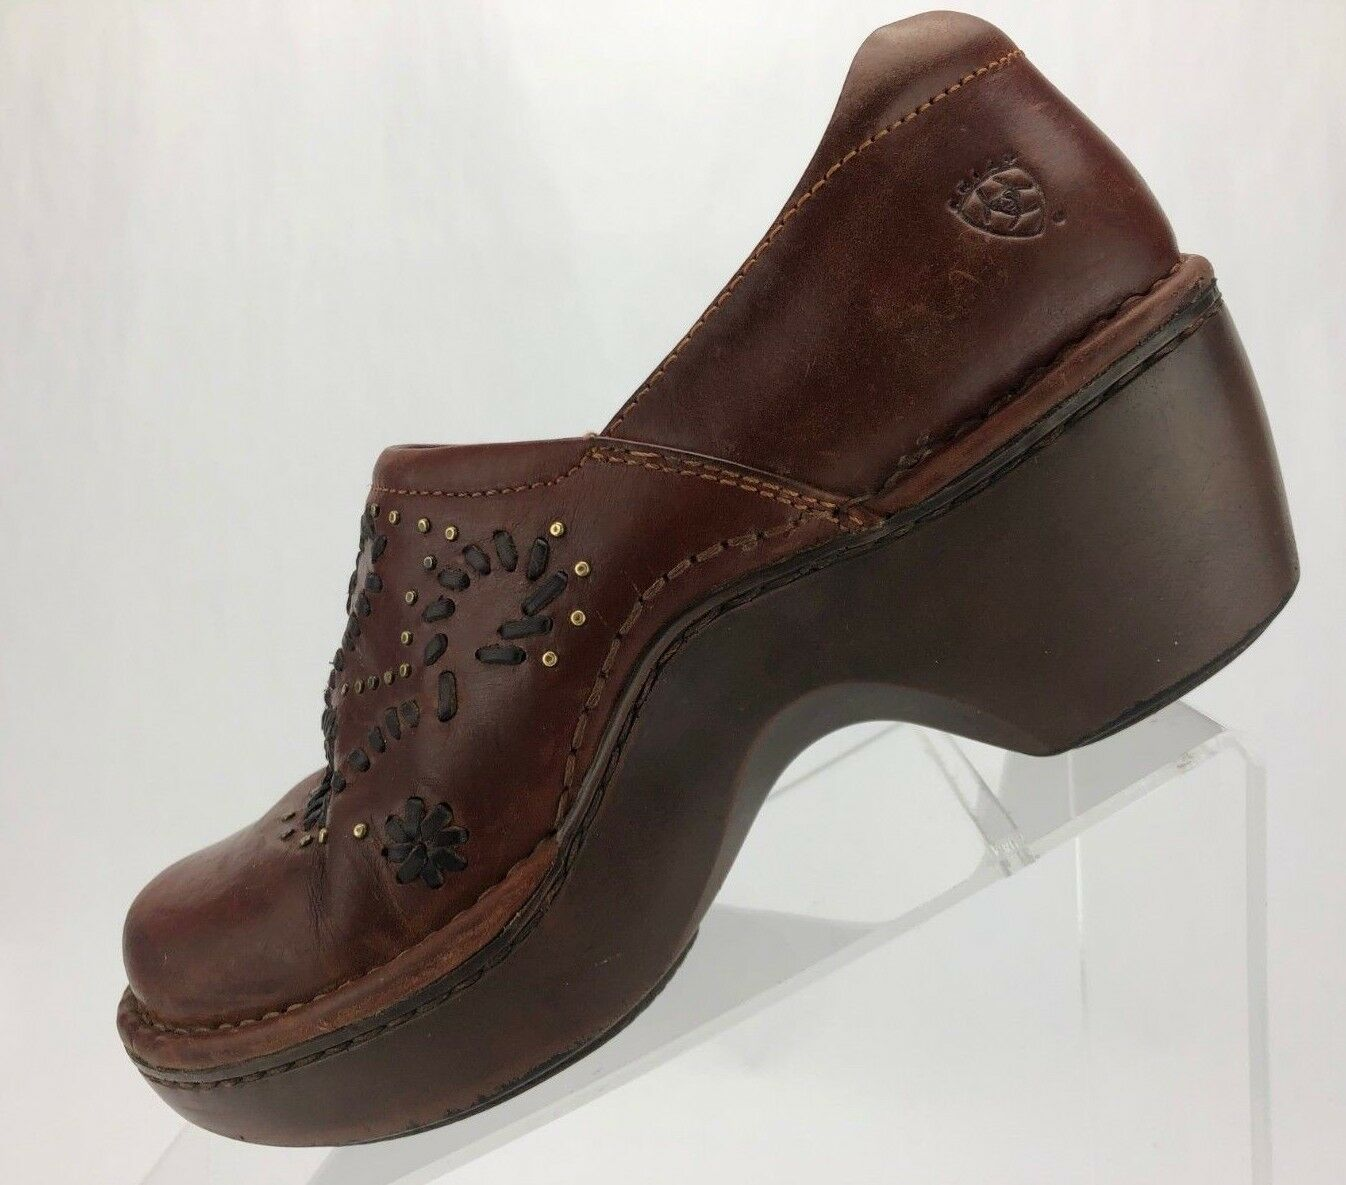 Ariat Nursing Clogs Brown Pelle Comfort Casual Mule Working Donna Size 6 B